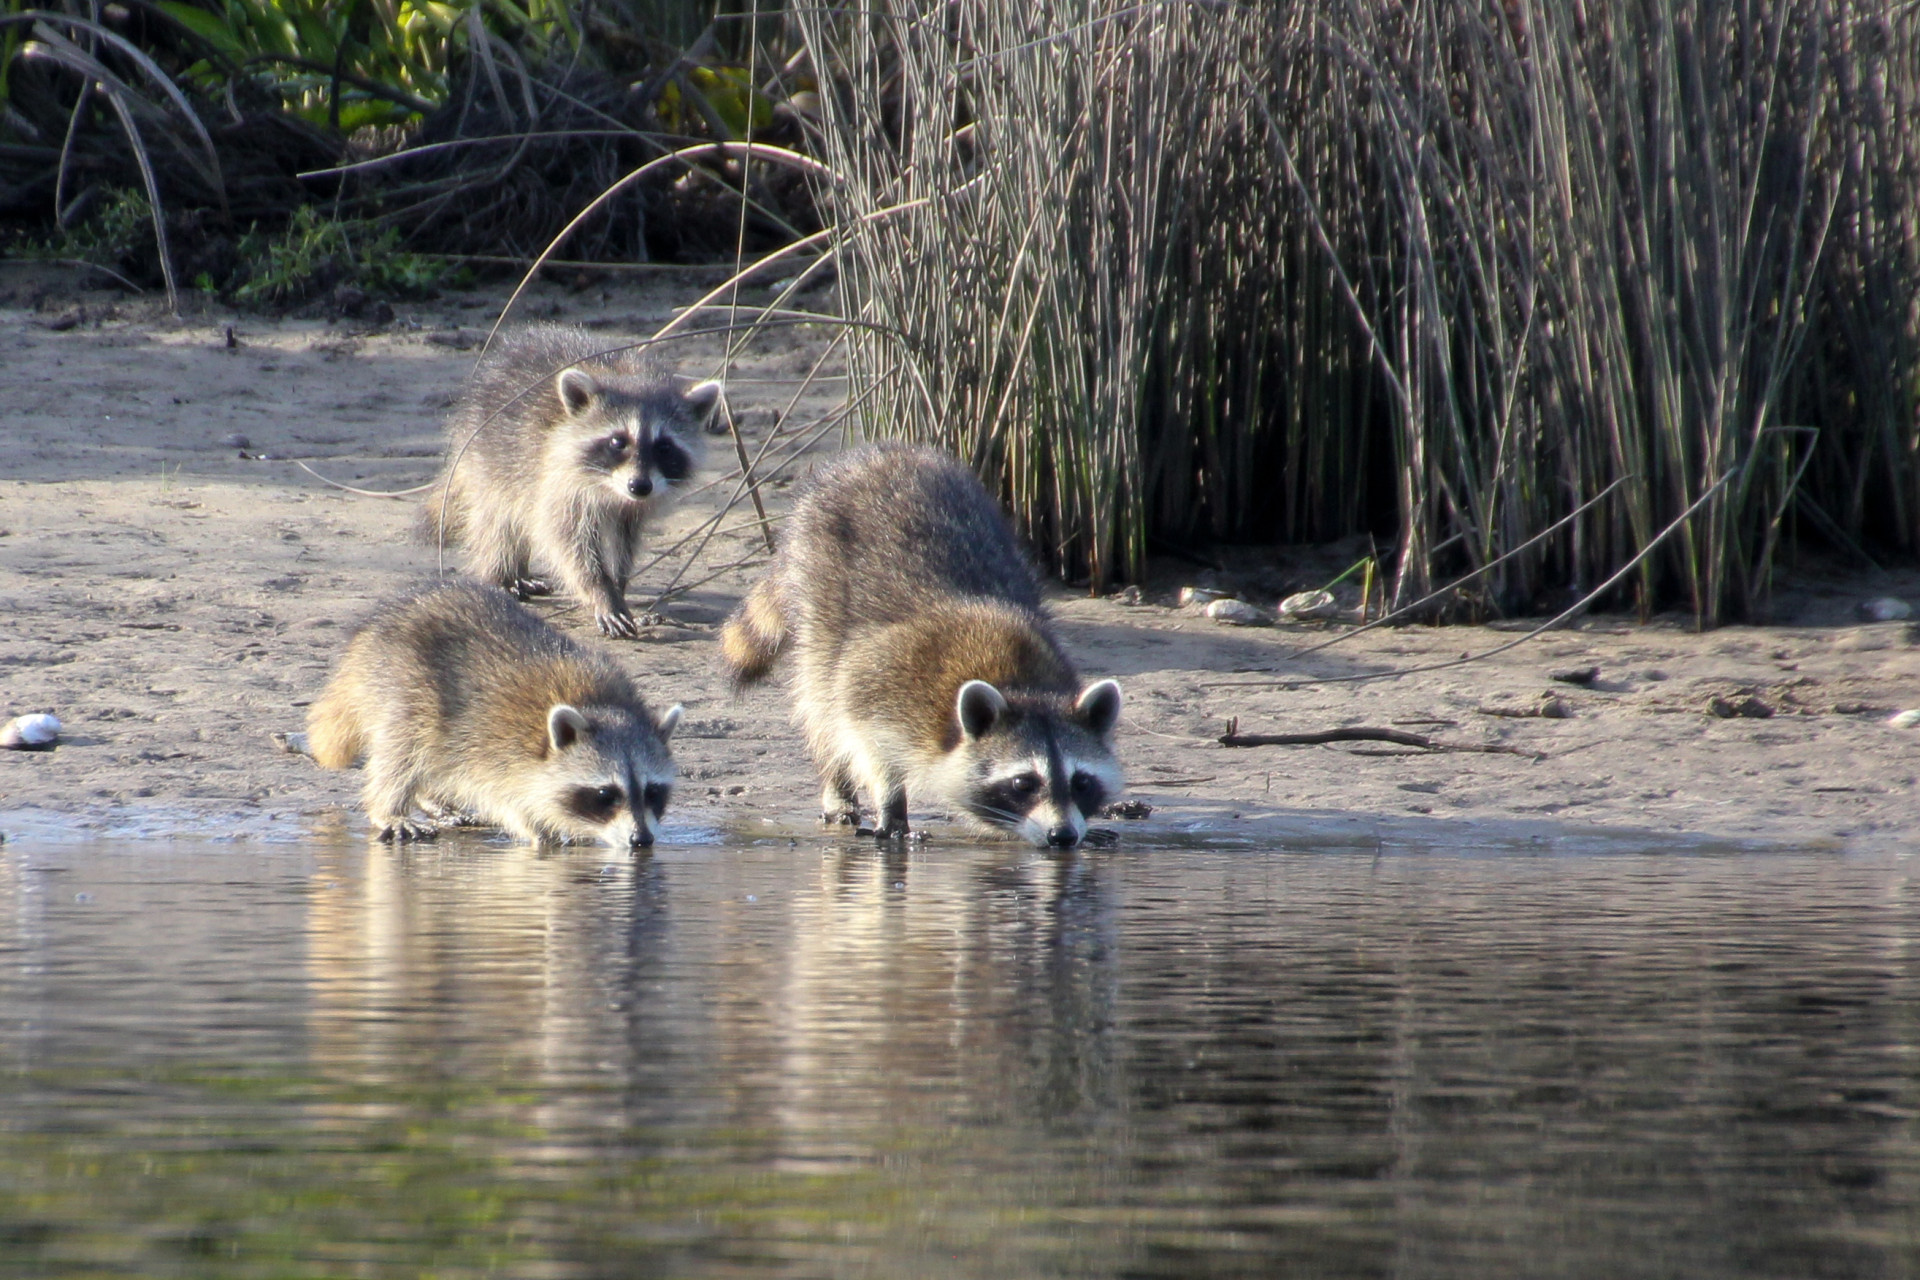 A family of Racoon on the Myakka River